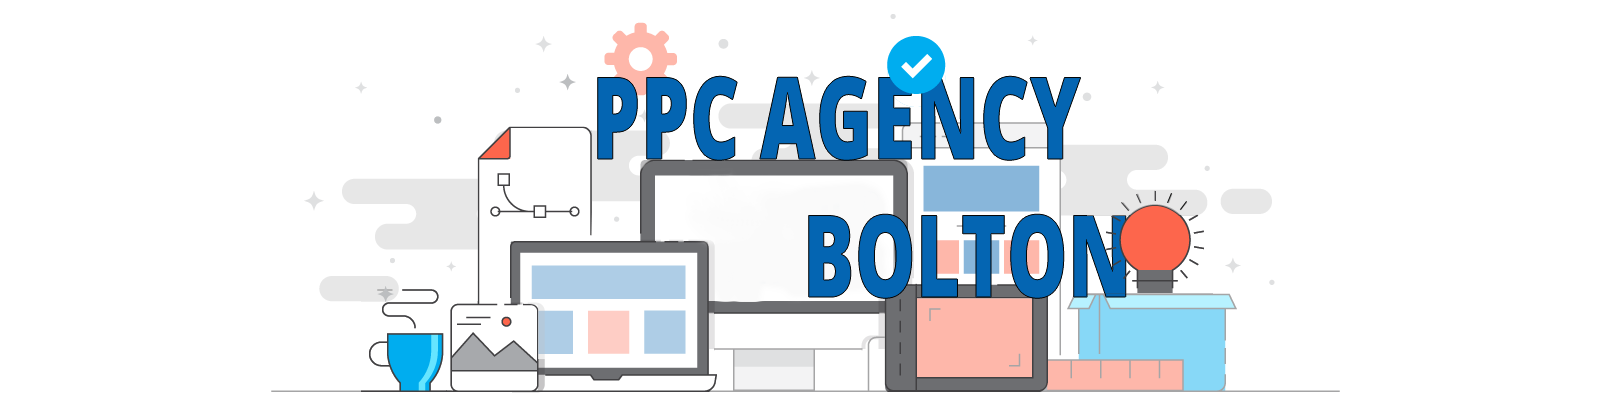 seek social ppc agency bolton header with transparent background